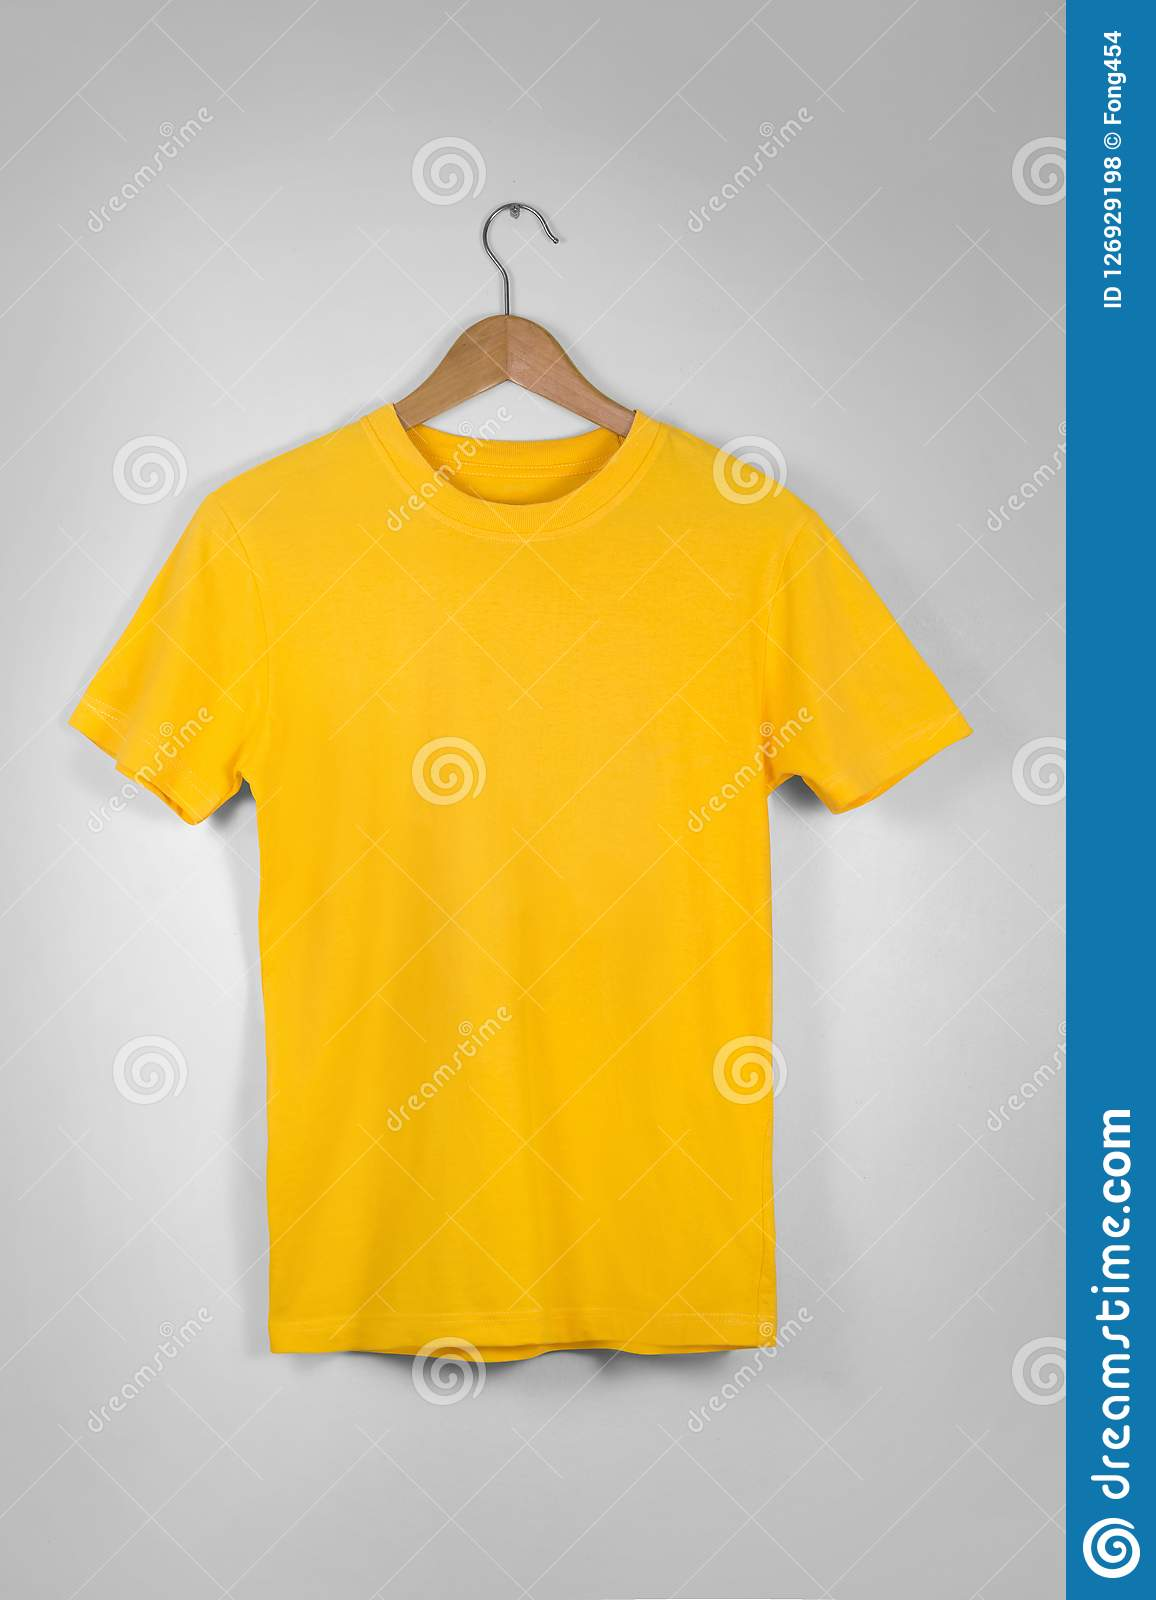 Yellow Blank Cotton Tshirt Hanging Center Gray Concrete Empty Wa